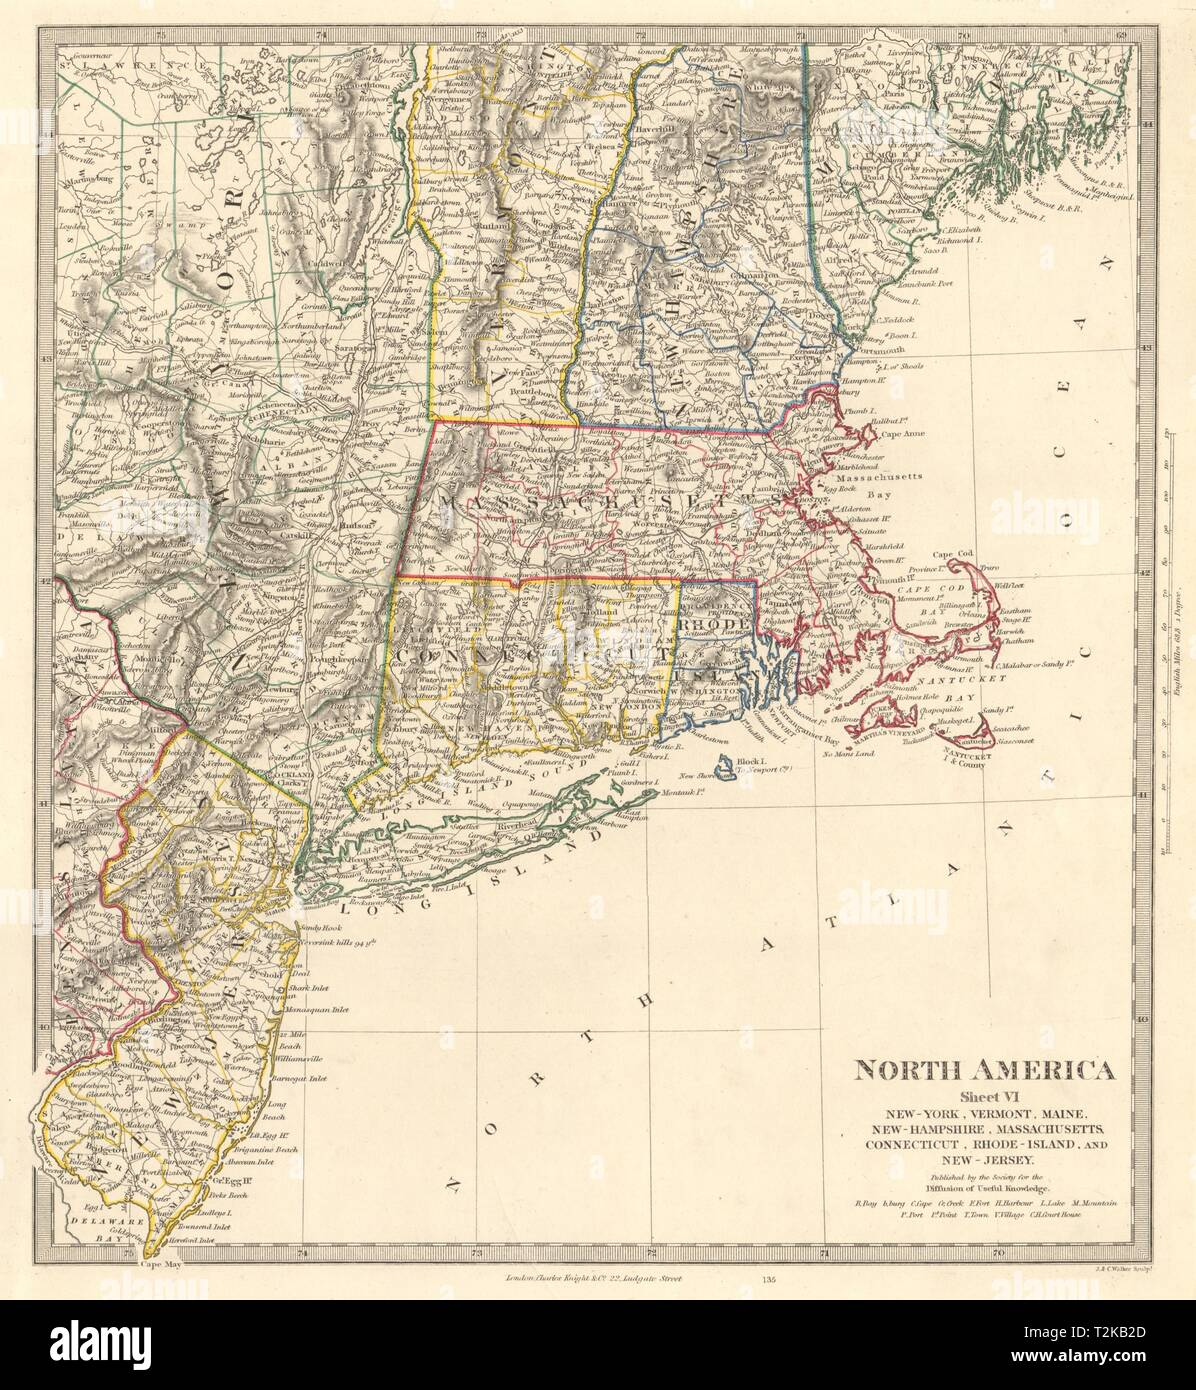 Map Of New York New Jersey And Connecticut.Usa New York Maine Massachusetts Connecticut New Jersey Nh Ri Vt